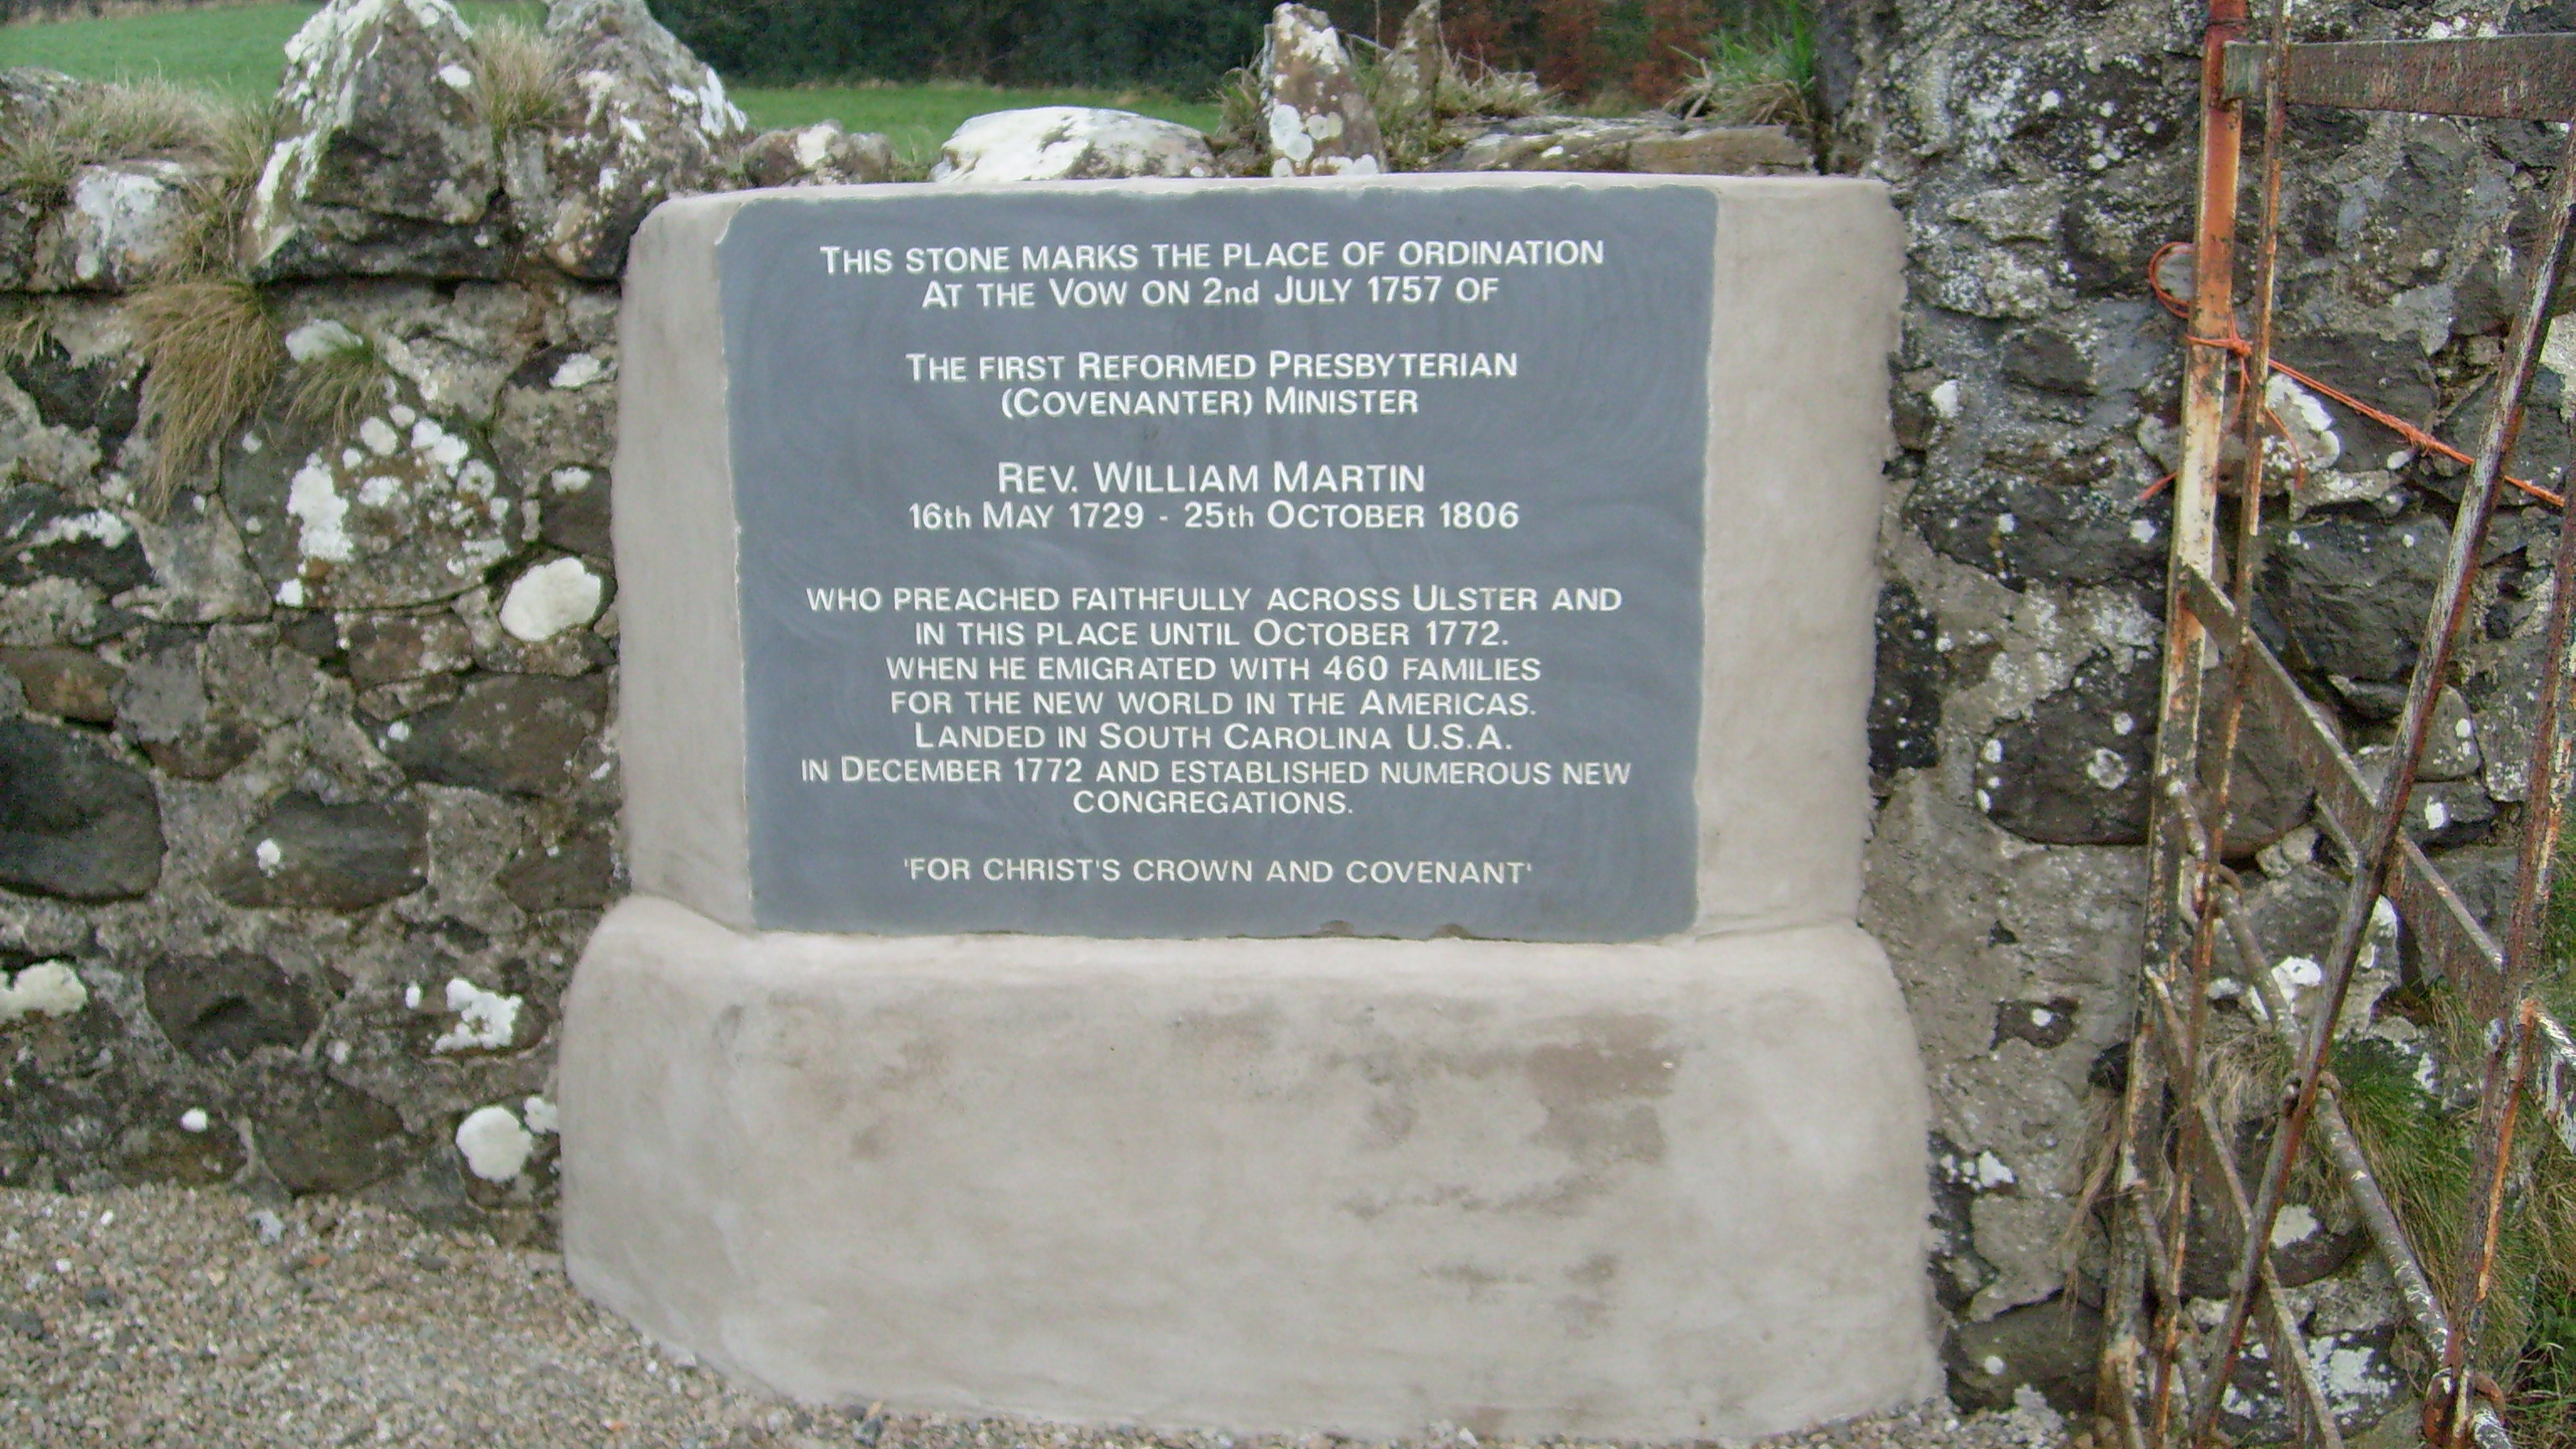 Stone at Vow to commemorate Reverend William Martin